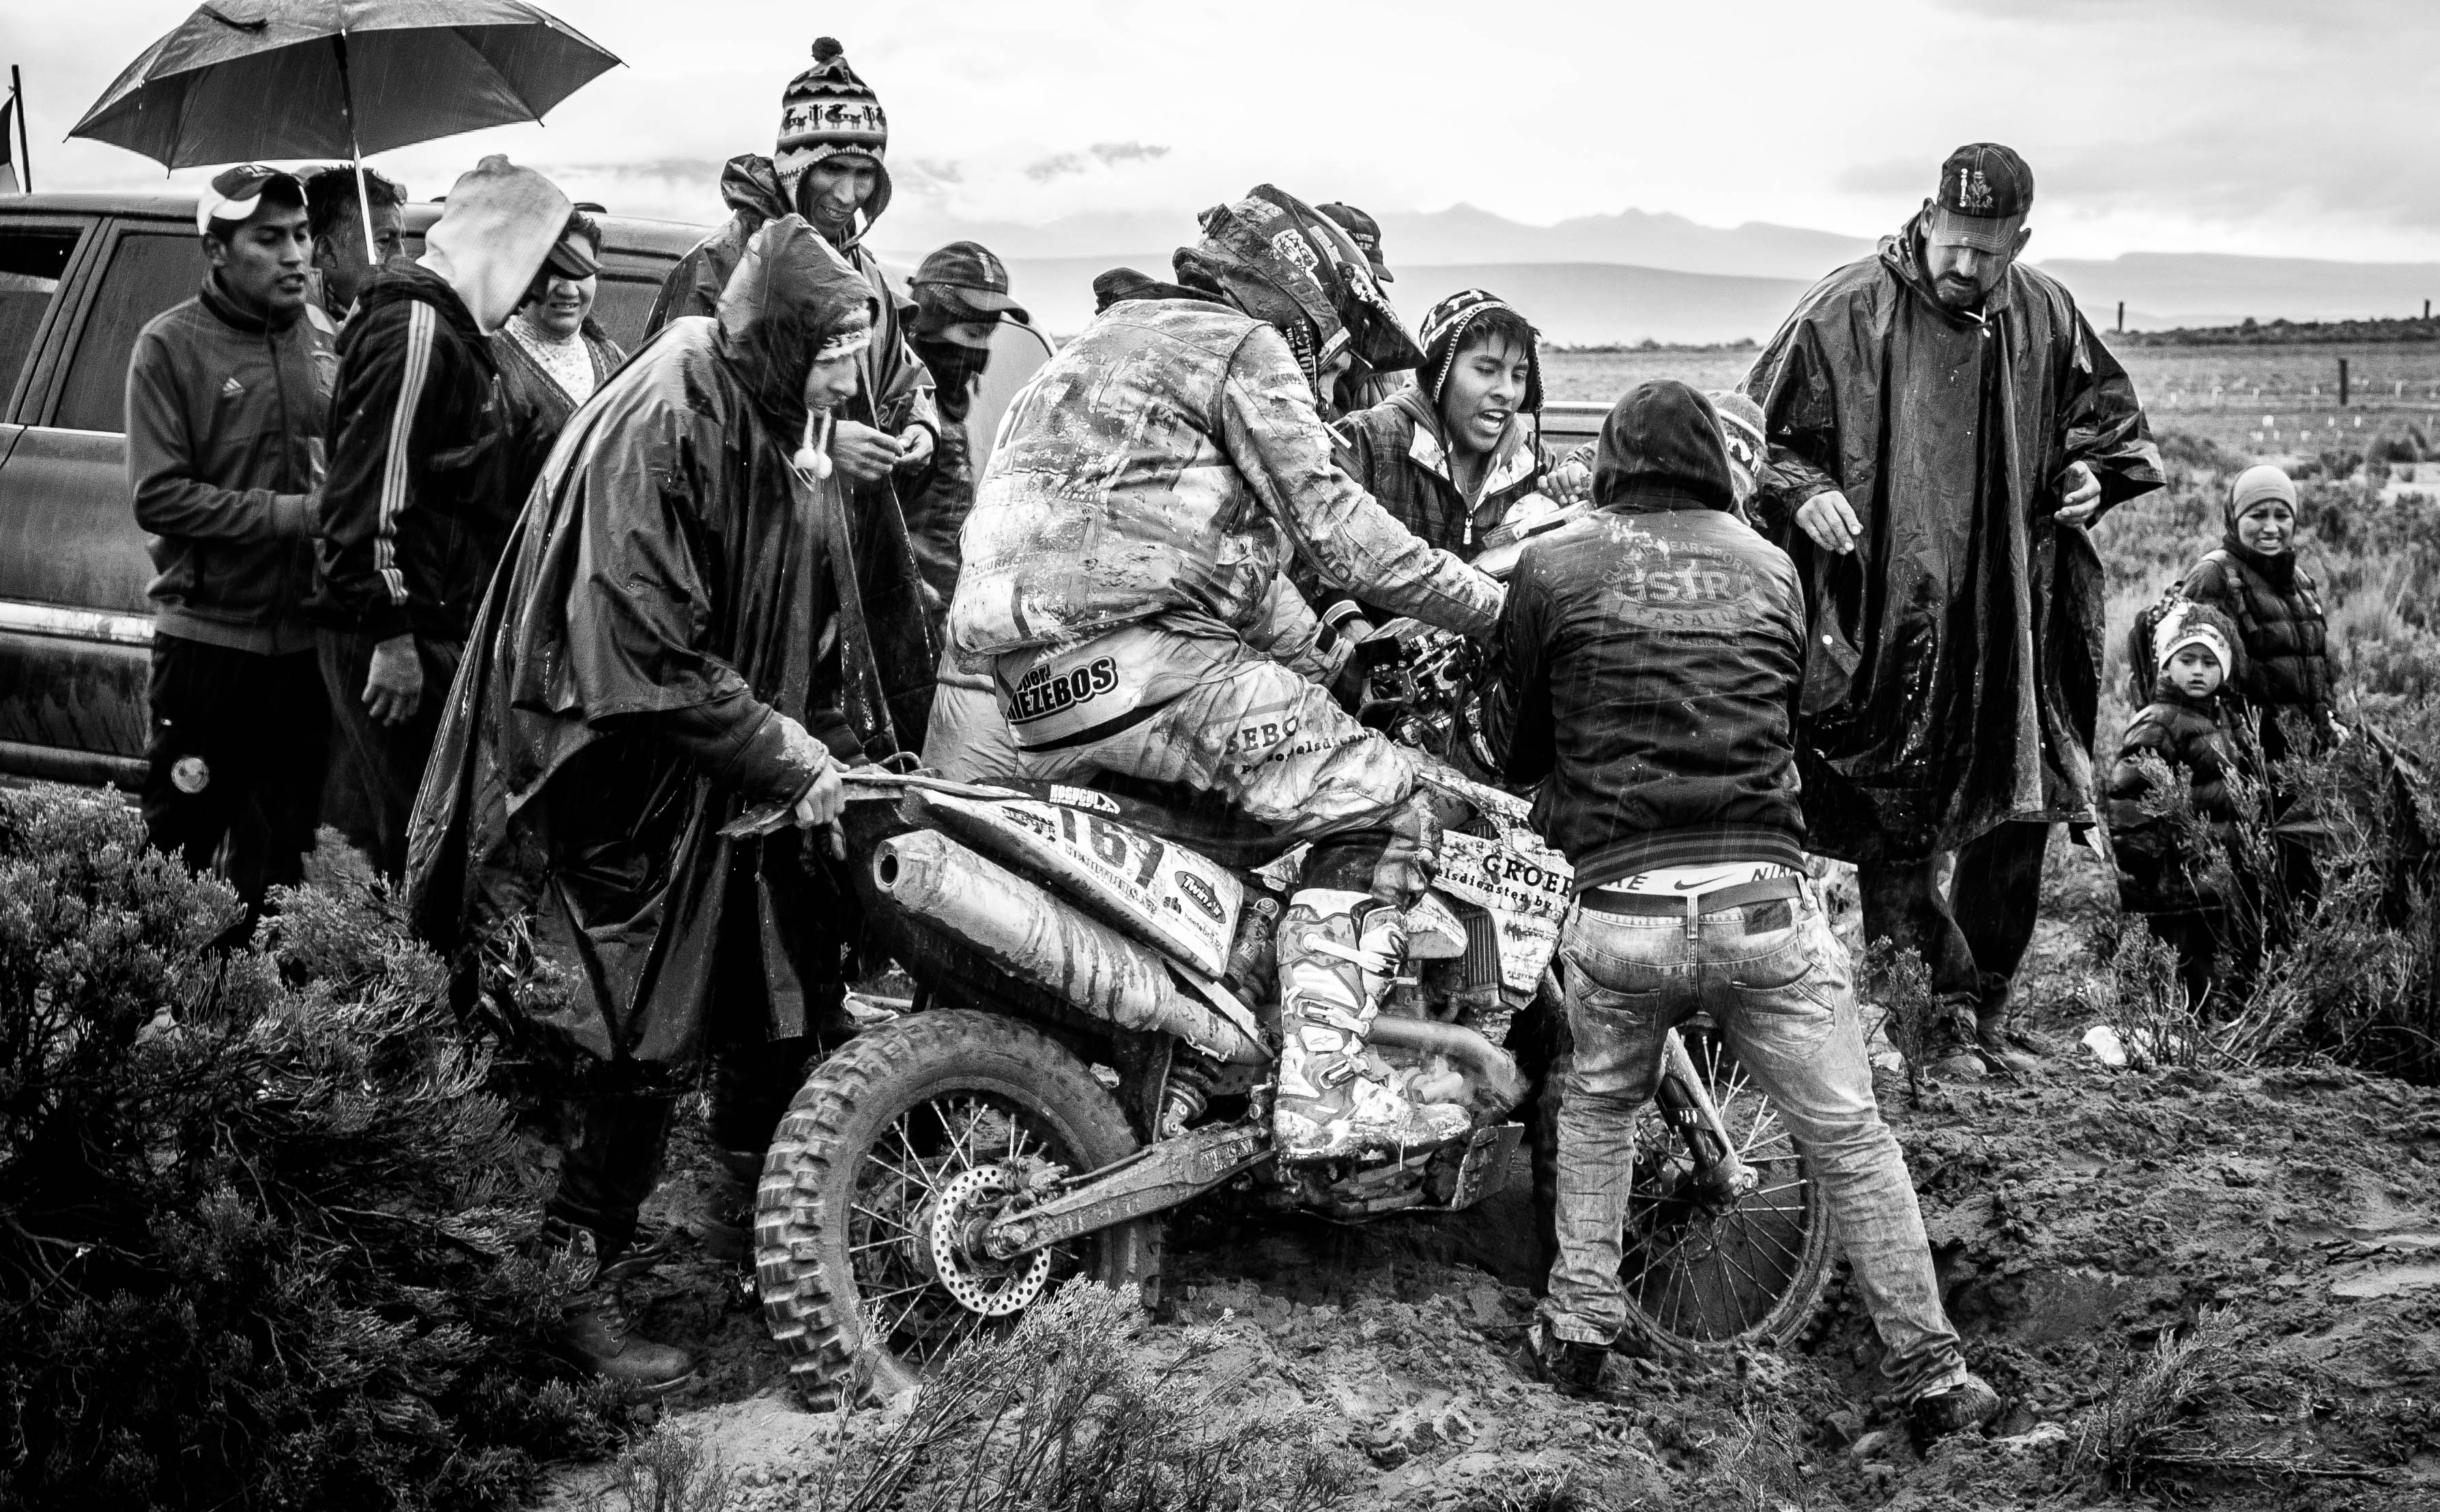 The Dakar Rally, Uyuni 2015. A2A